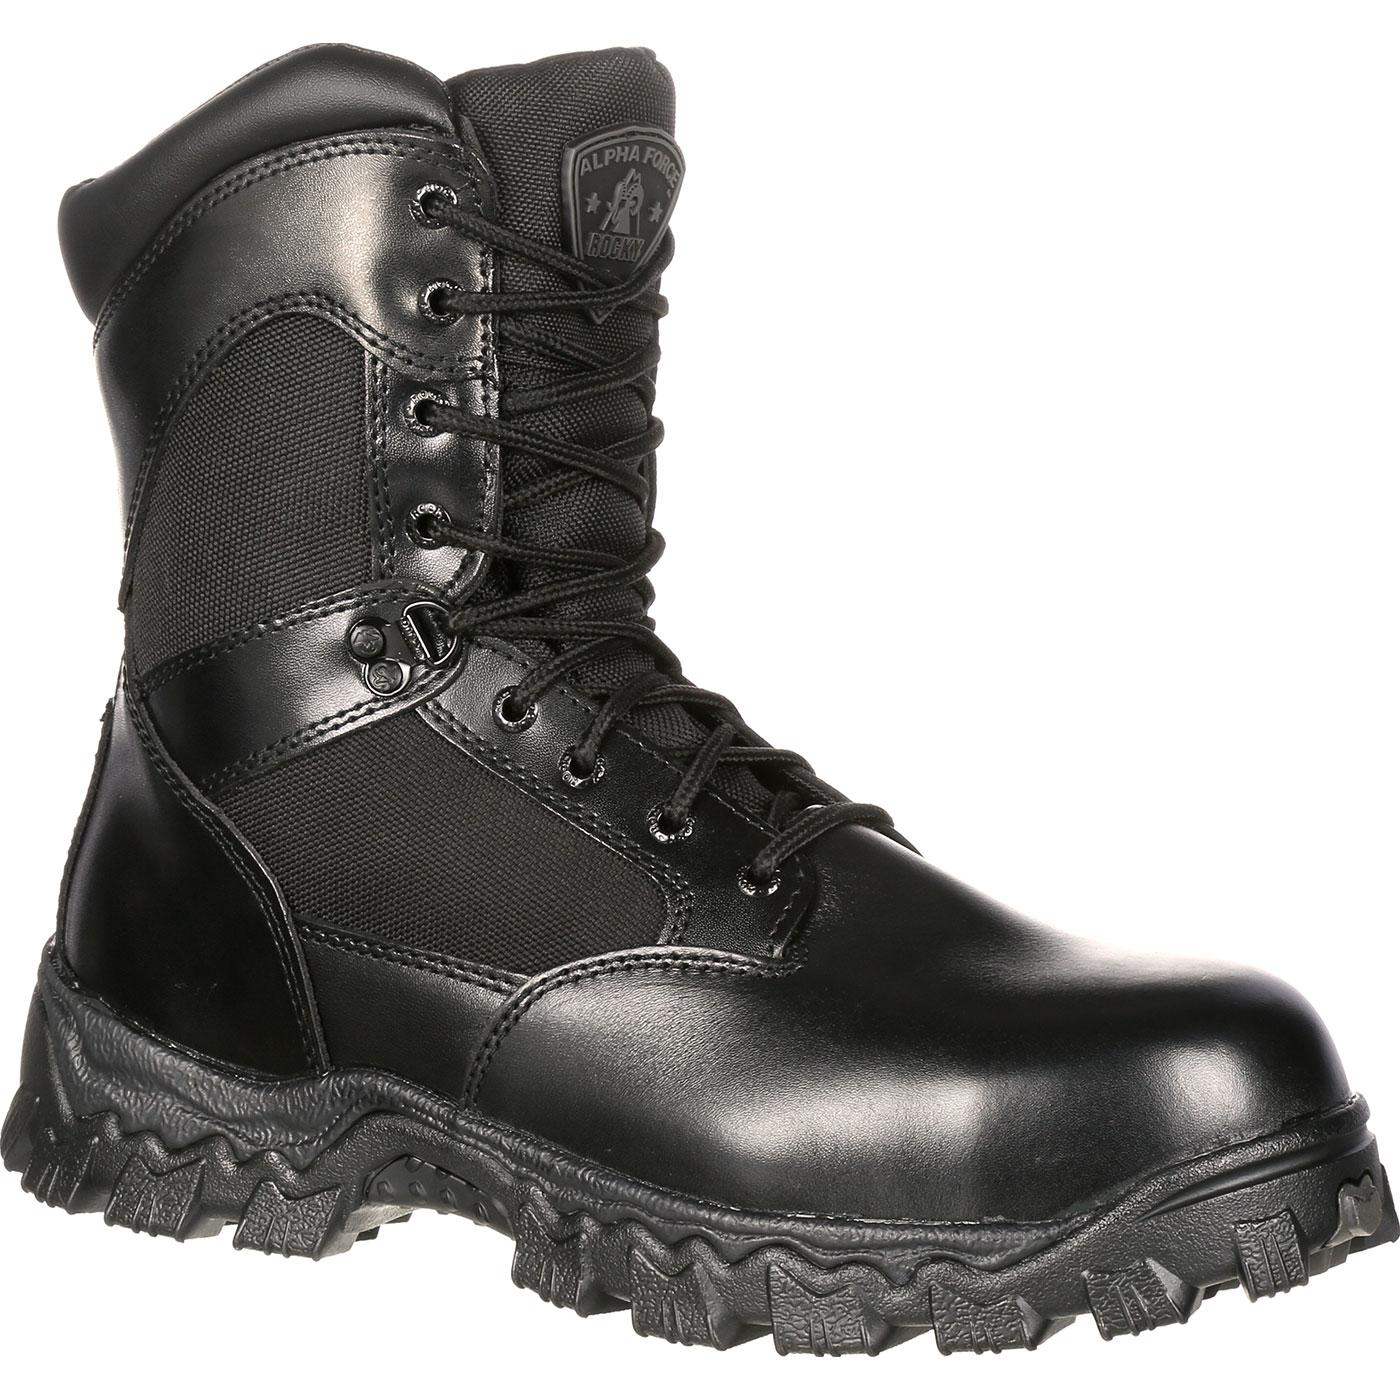 AlphaForce Zipper Waterproof Duty Boot-Rocky Boots